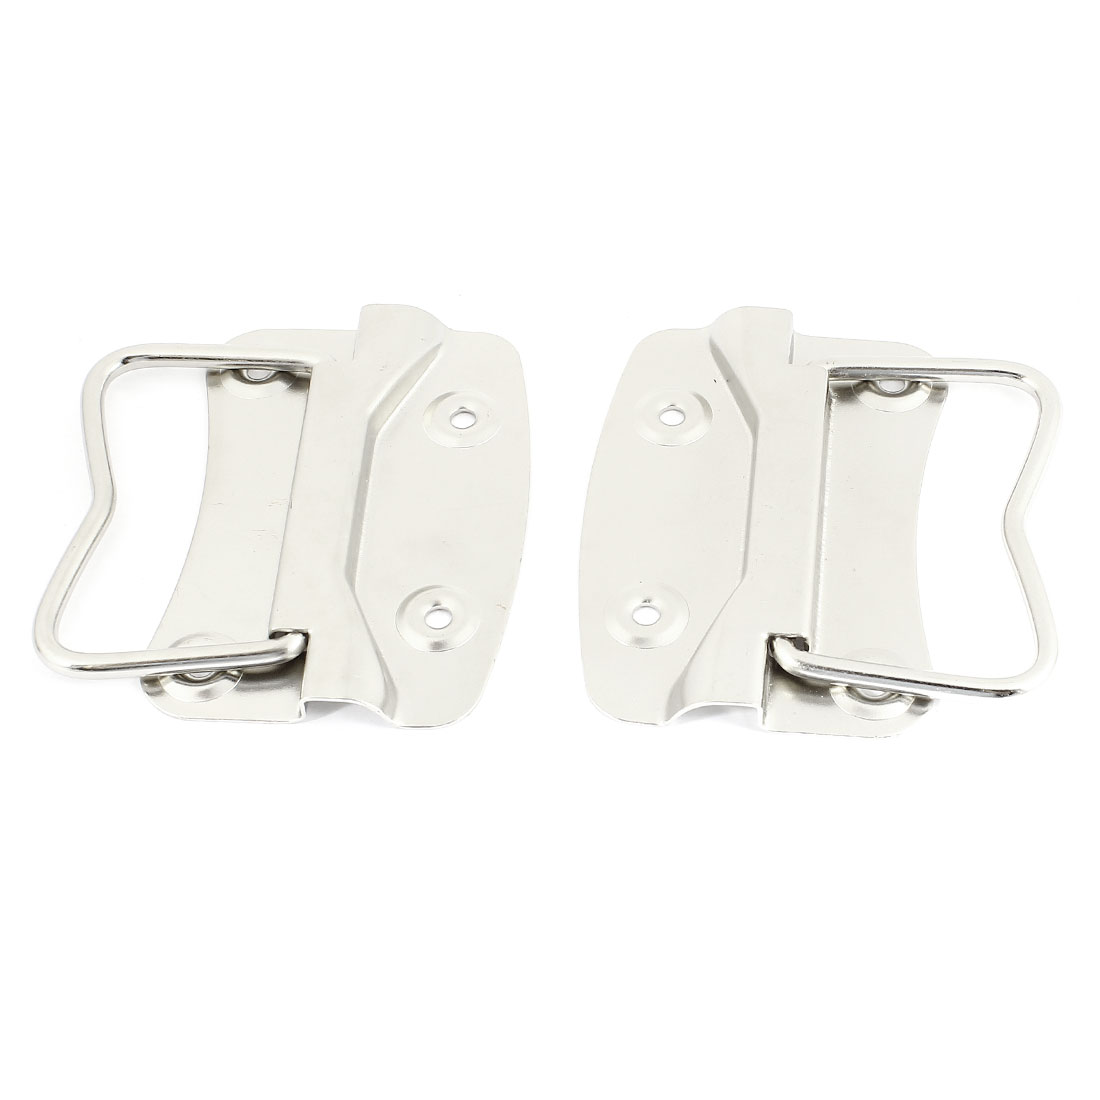 2 Pcs Silver Tone Folding Style 10 x 6.5cm Mounting Plates Pull Handle